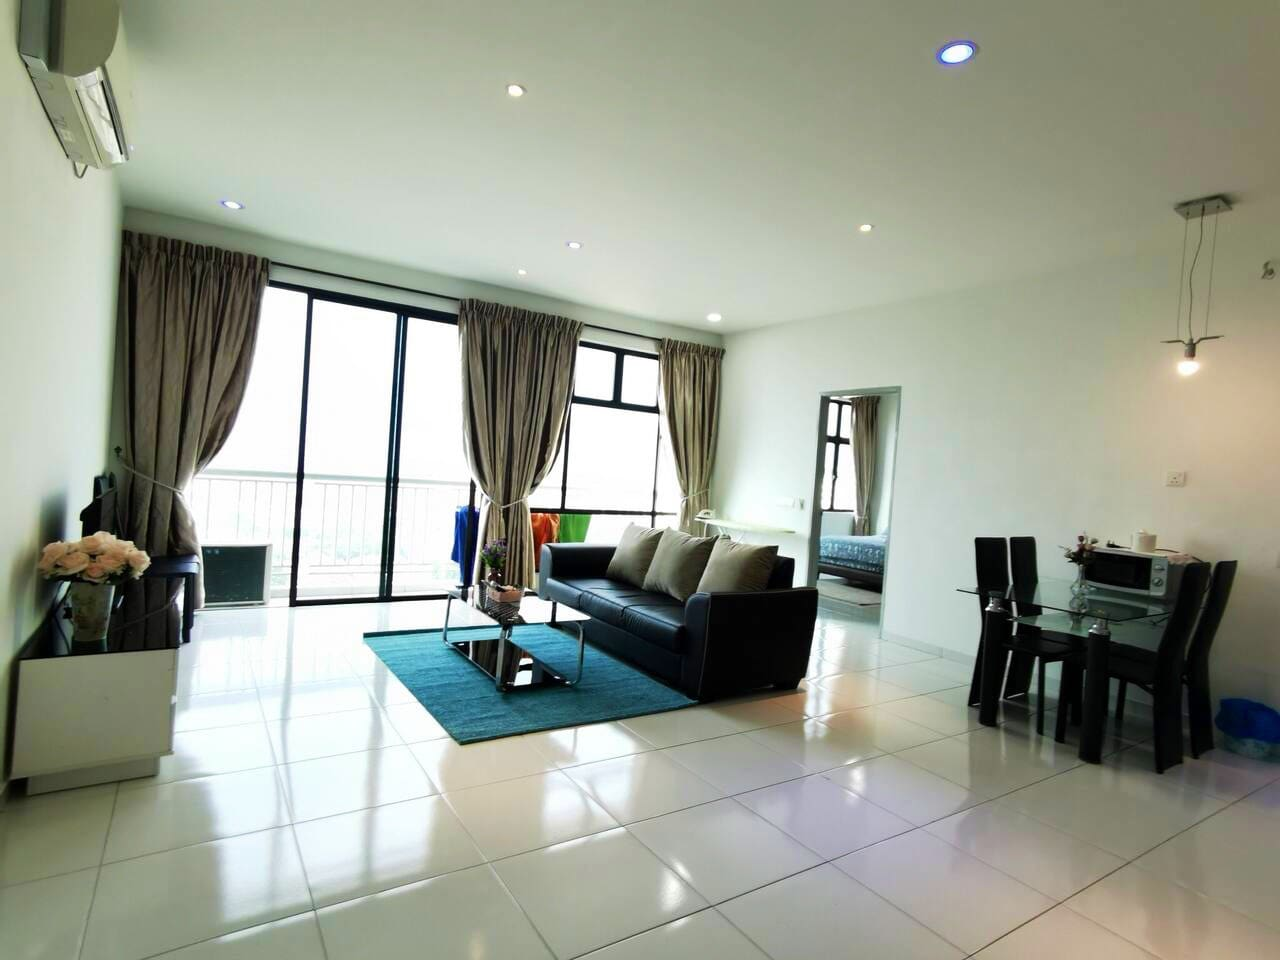 High floor spacious living room with Cozy ambience and lighting